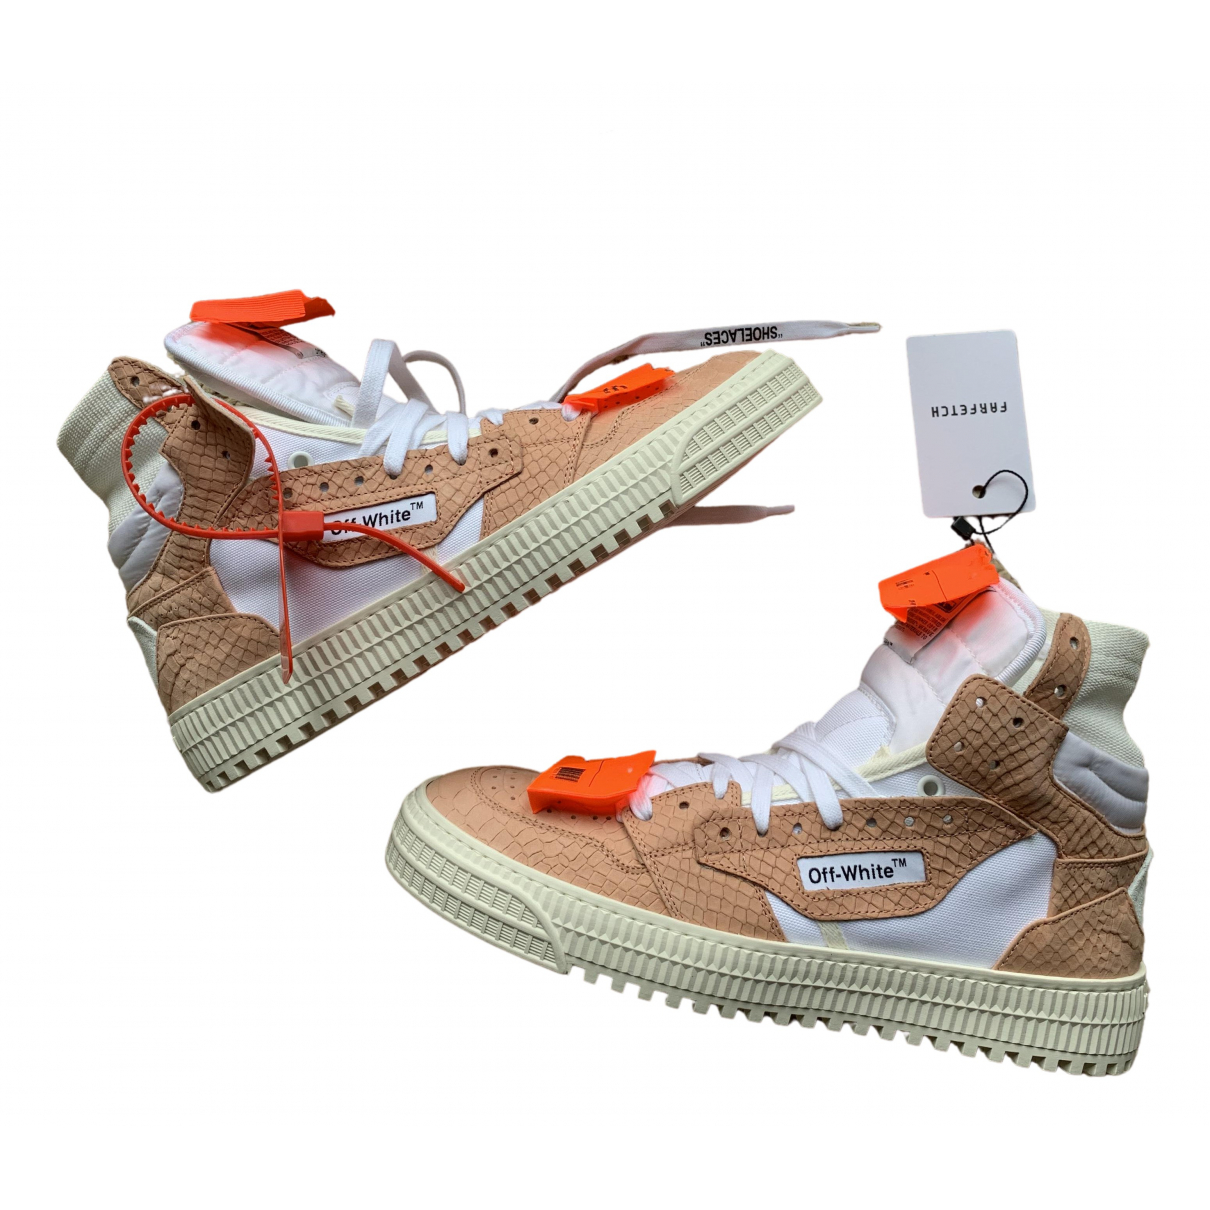 Off-white 3.0 Polo Leather Trainers for Men 41 EU